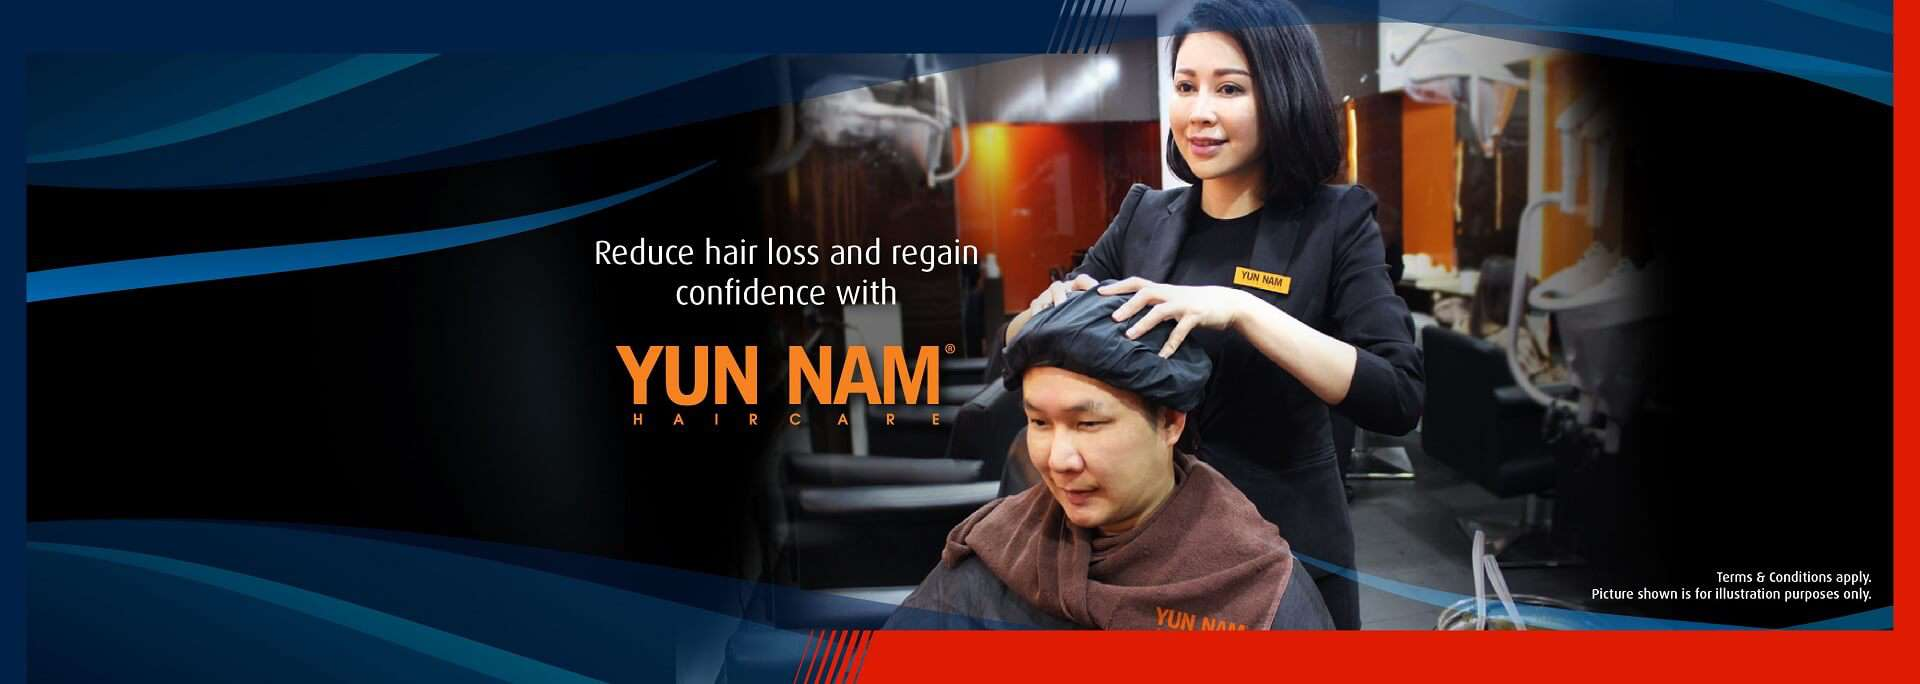 Get offers for hair treatment at Yun Nam using your HLB Credit or Debit Cards